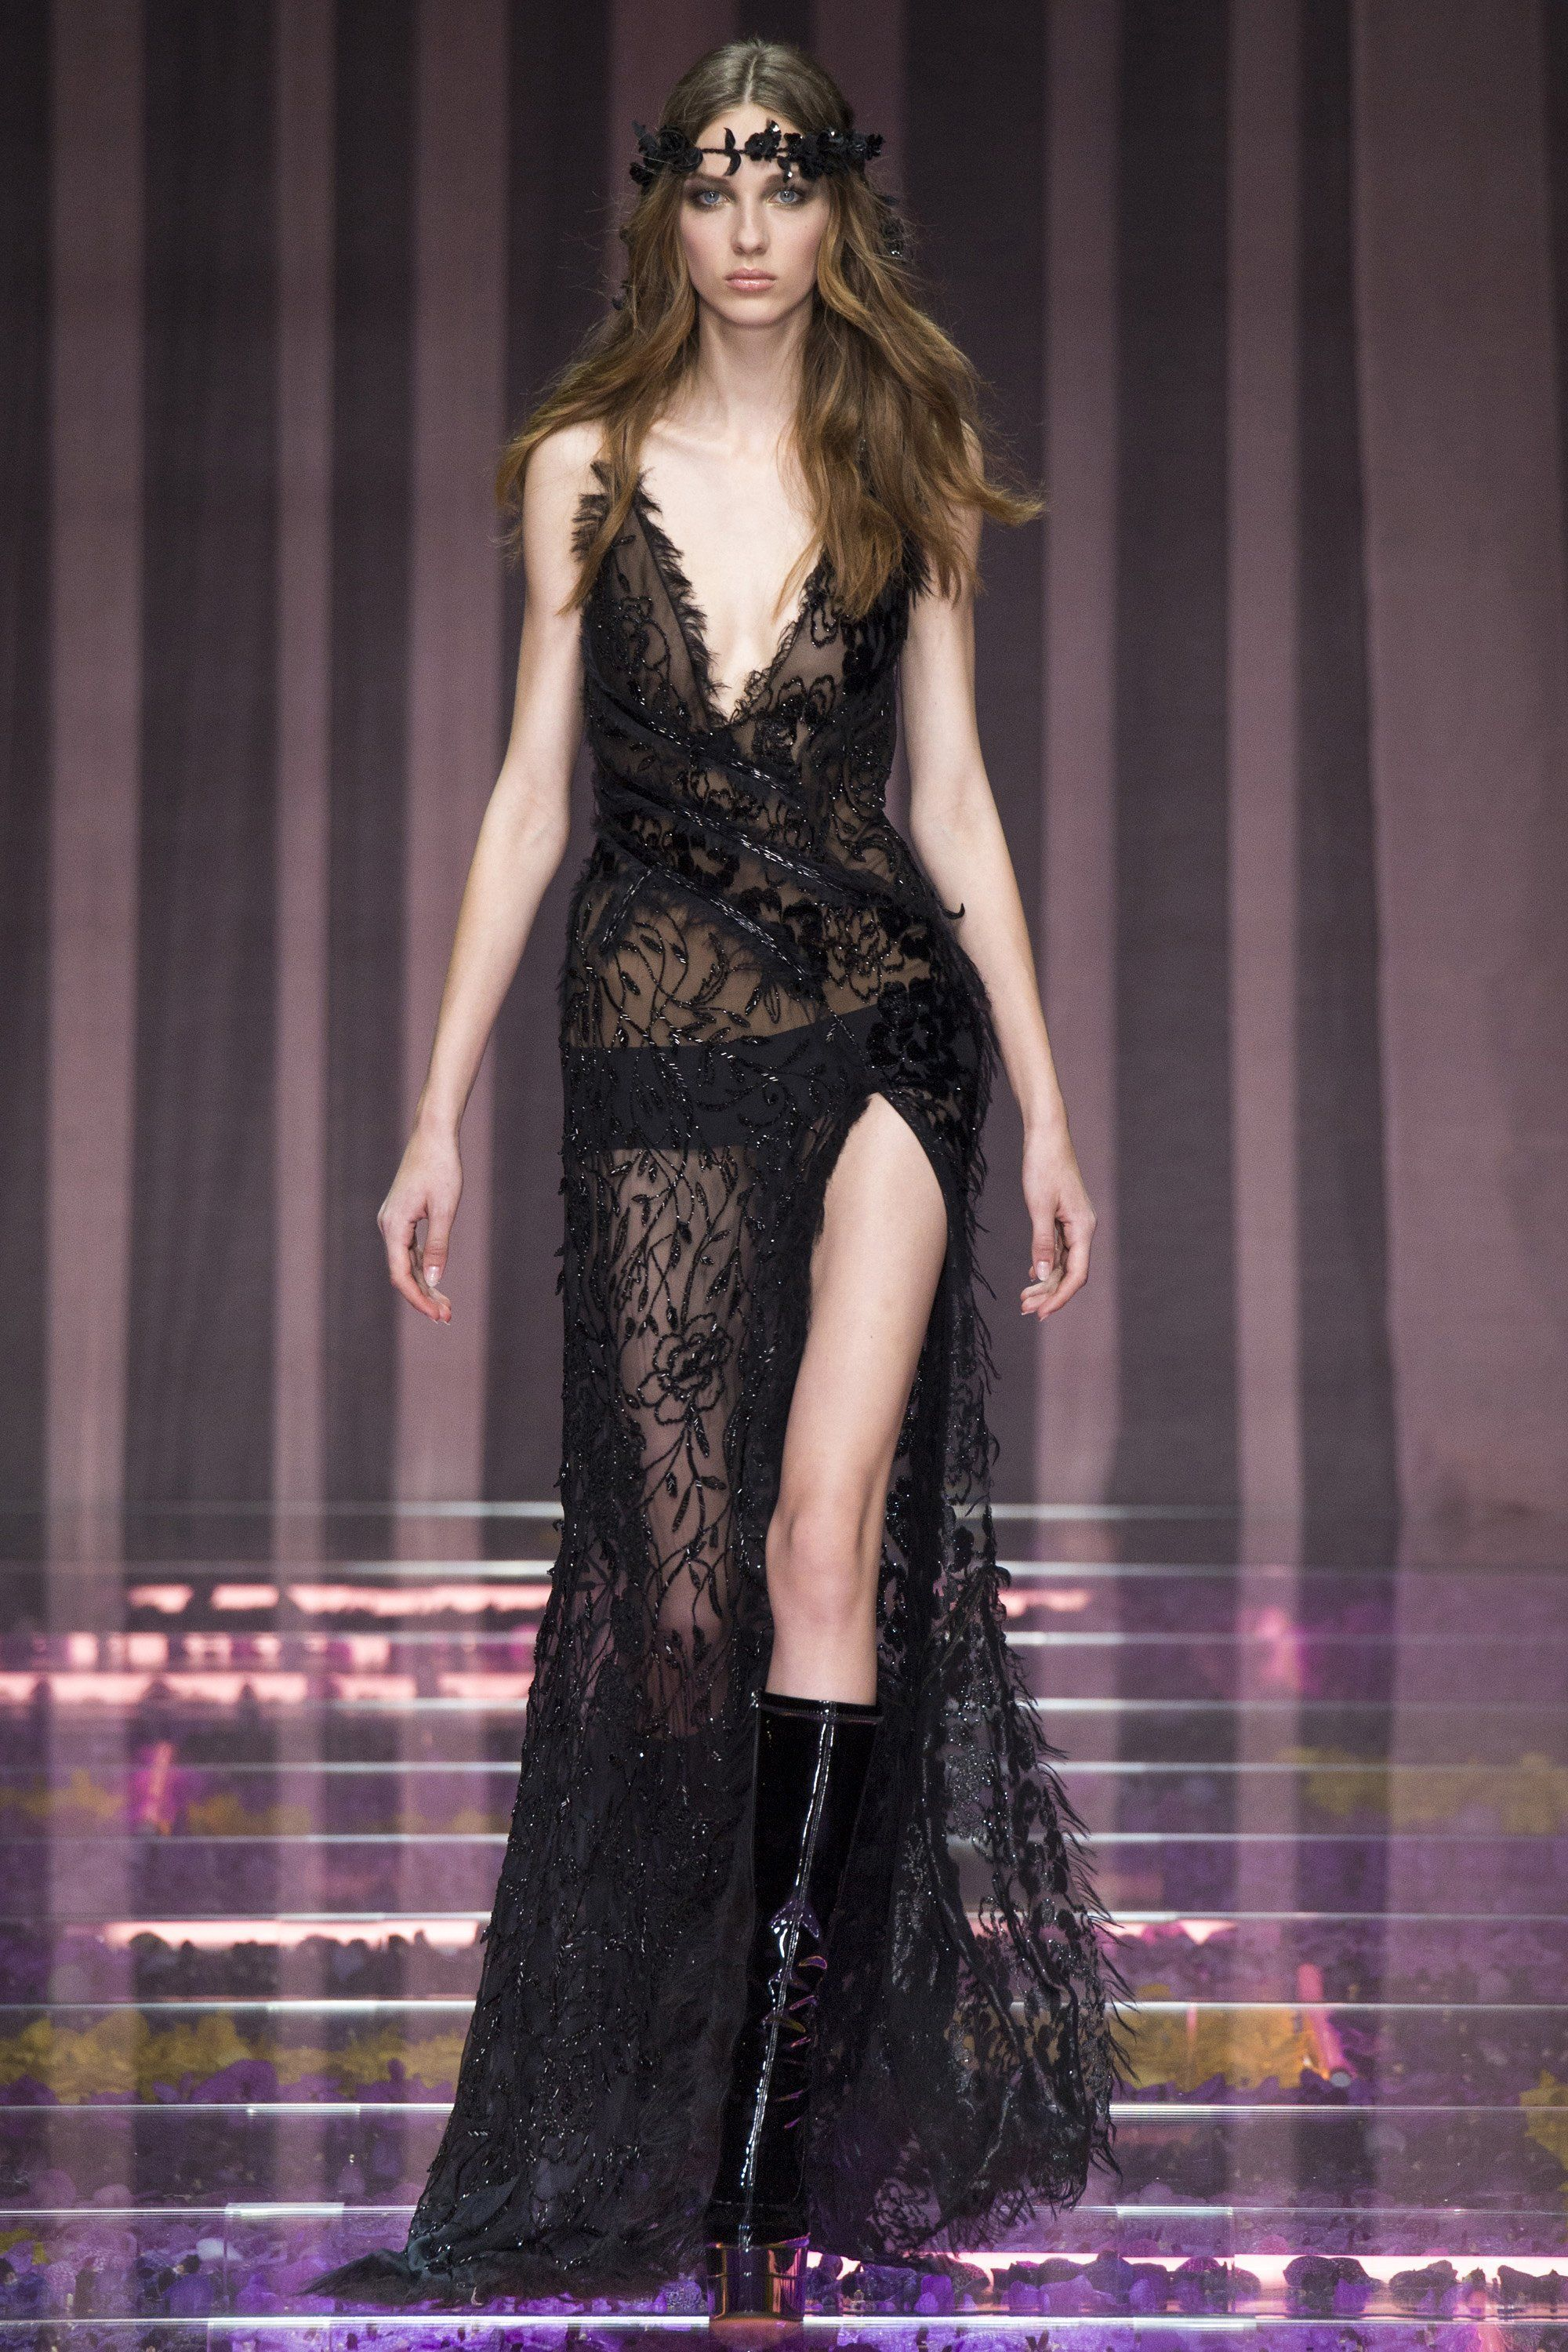 Atelier Versace Fall 2015 Couture Runway | Fall 2015, Versace and ...